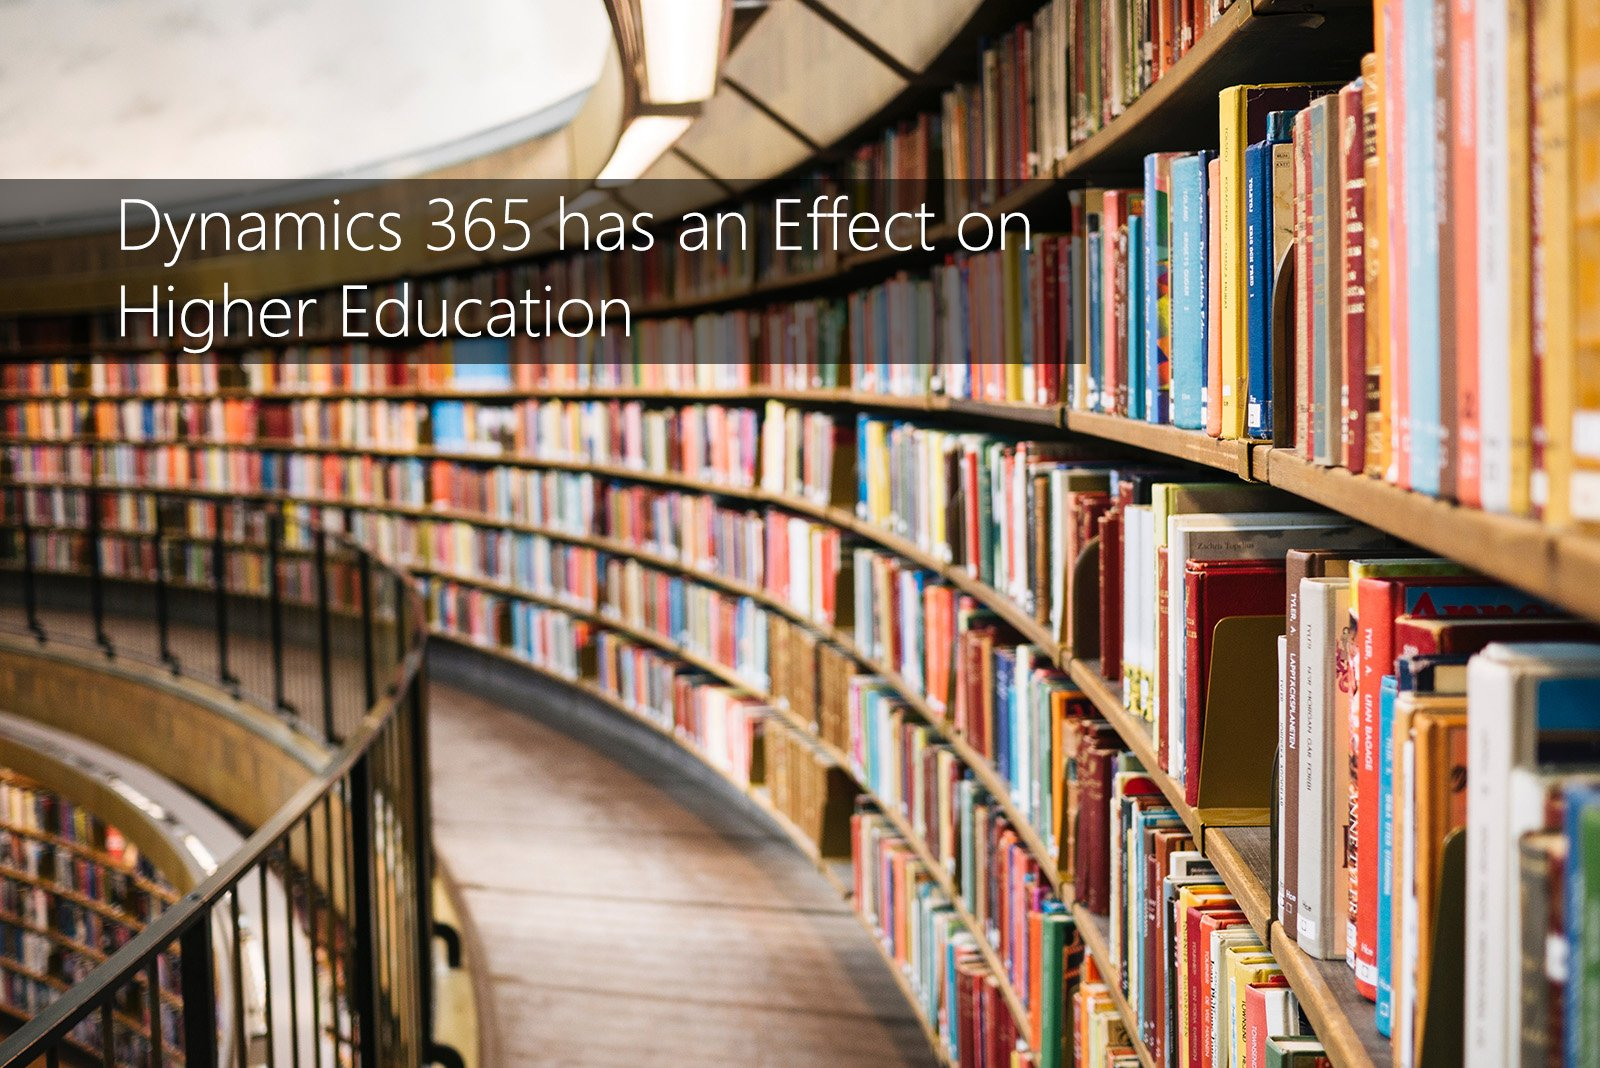 Dynamics 365 has an Effect on Higher Education